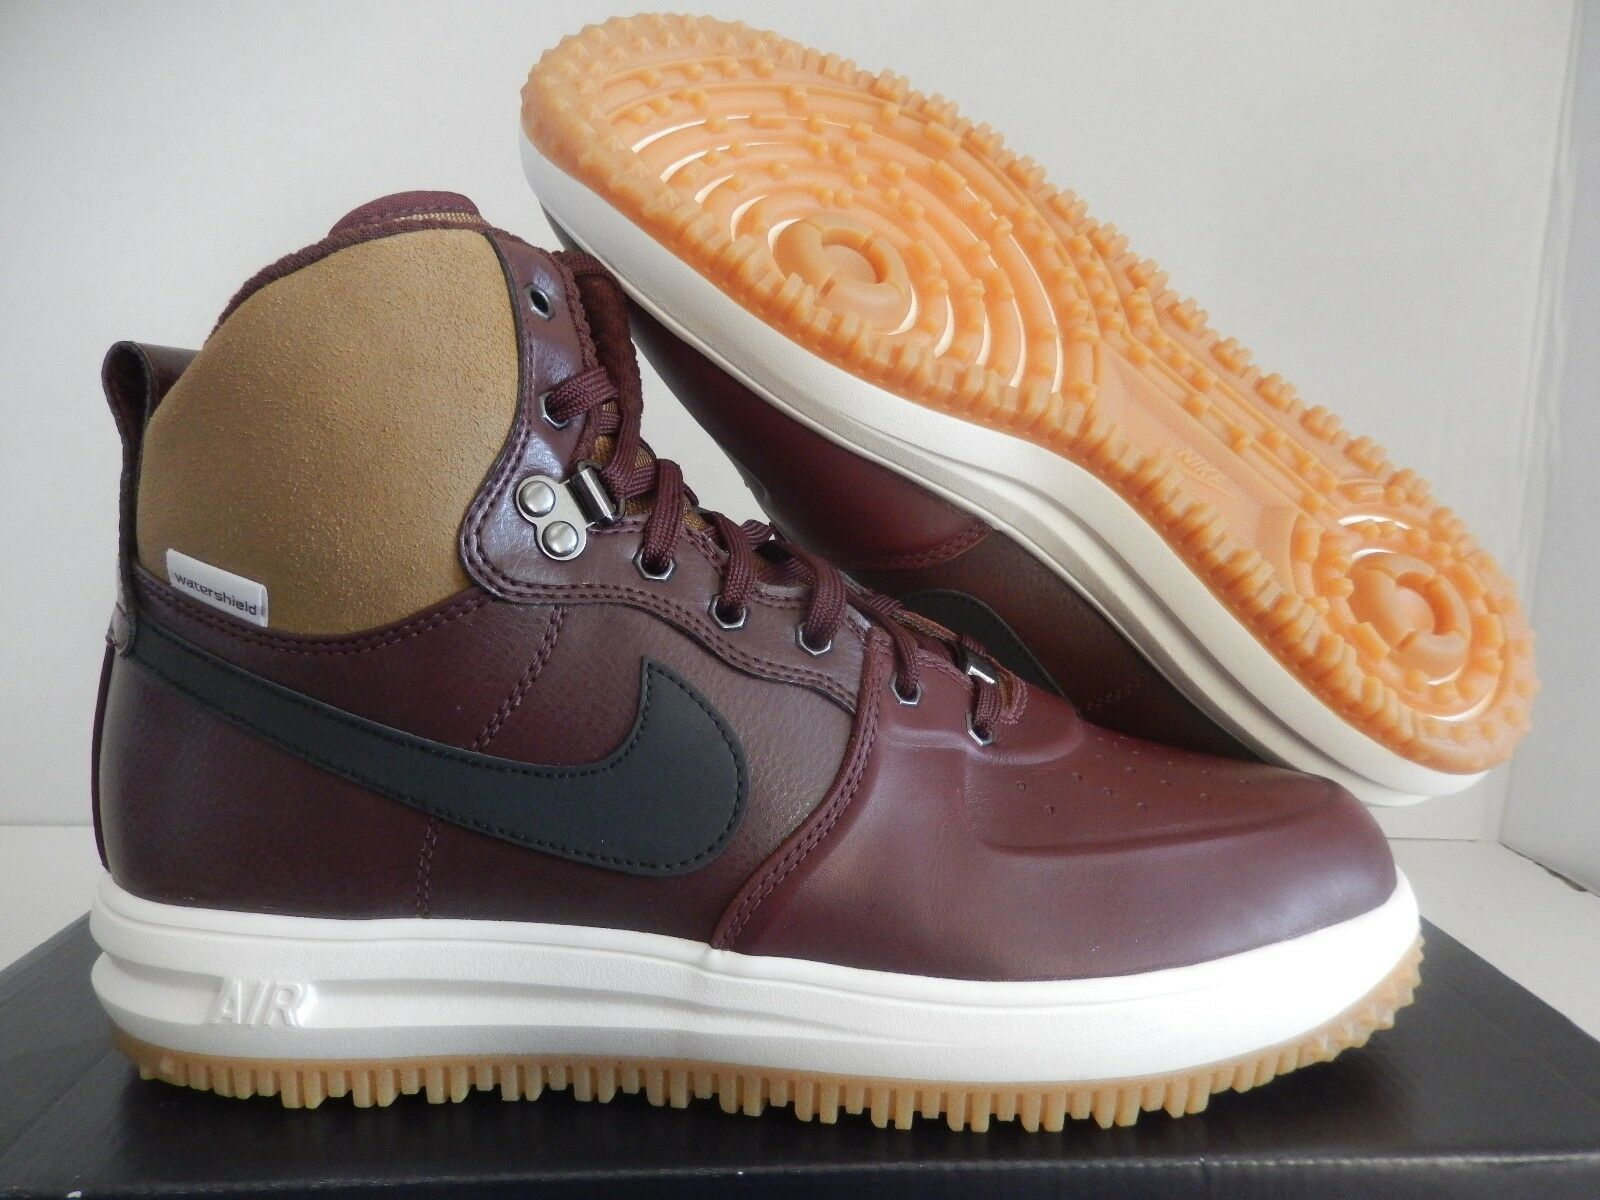 NIKE LUNAR FORCE 1 SNEAKERBOOT BARKROOT BROWN-BLACK SZ 11 [654481-200]